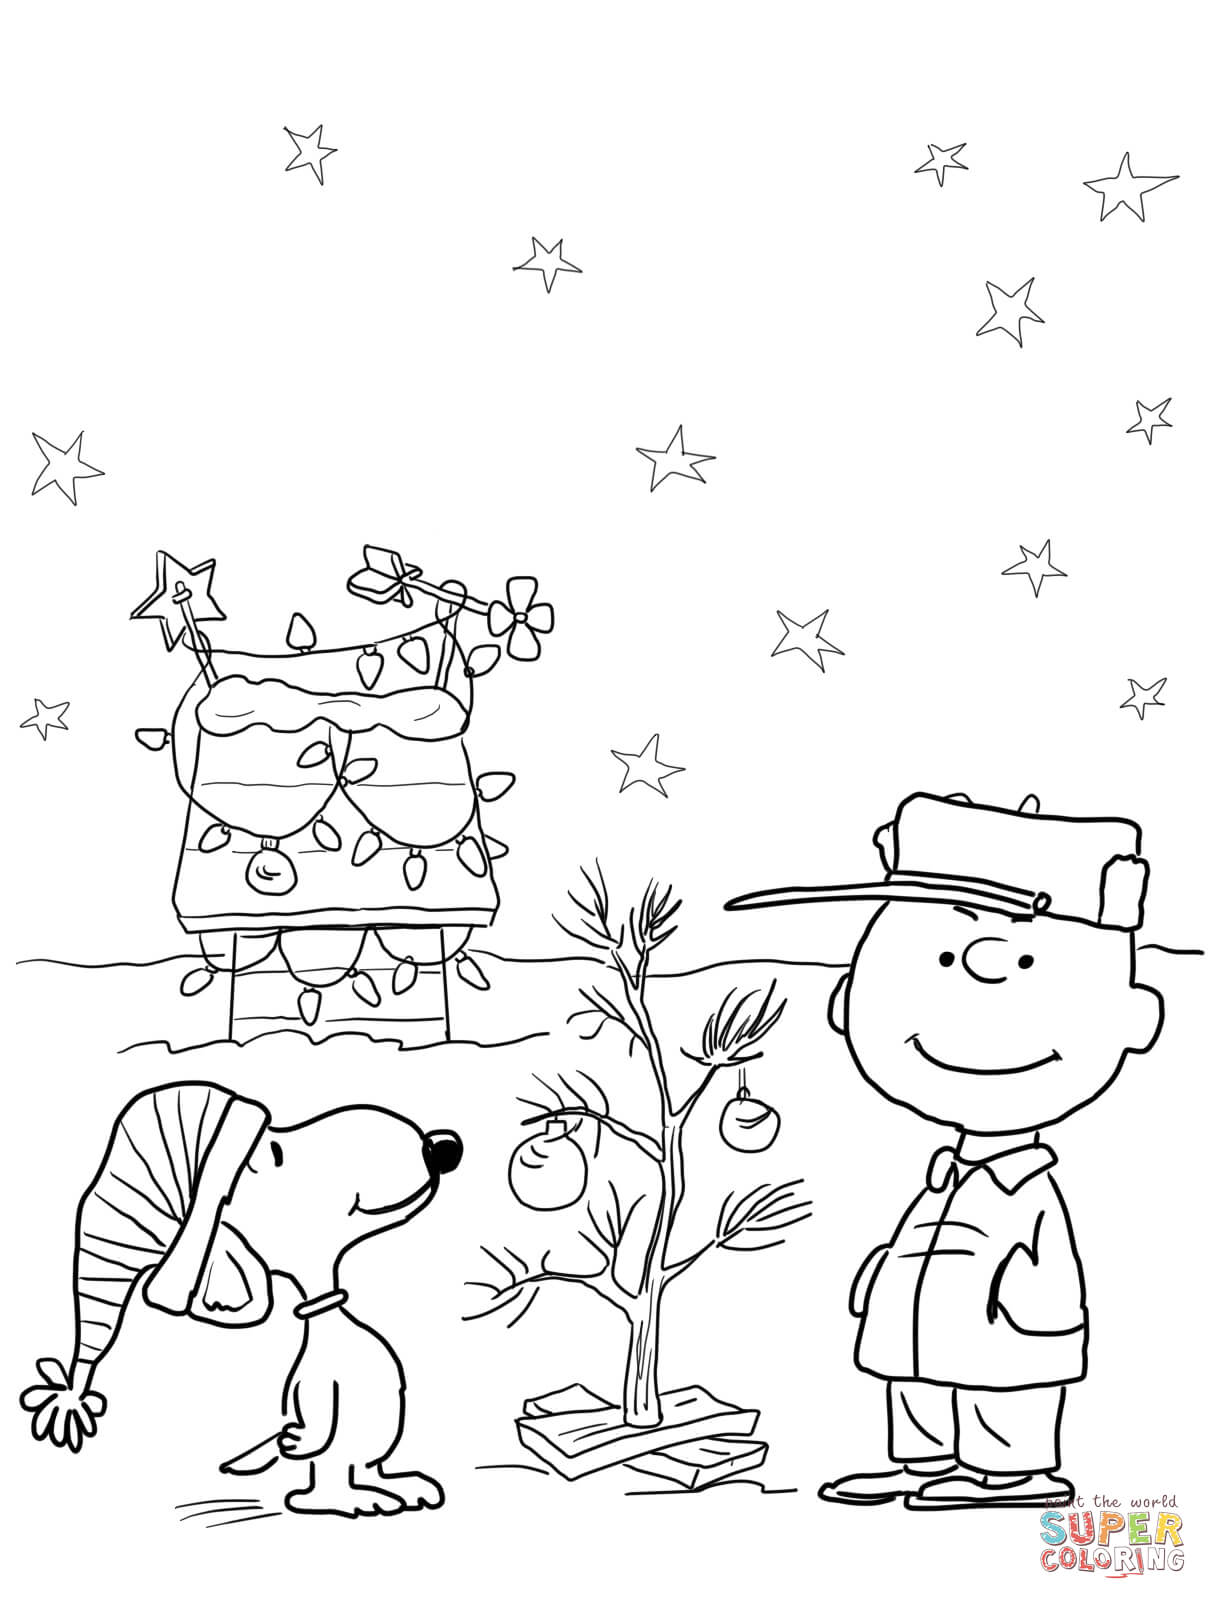 Christmas Colouring Pages For Free With Charlie Brown Coloring Page Printable